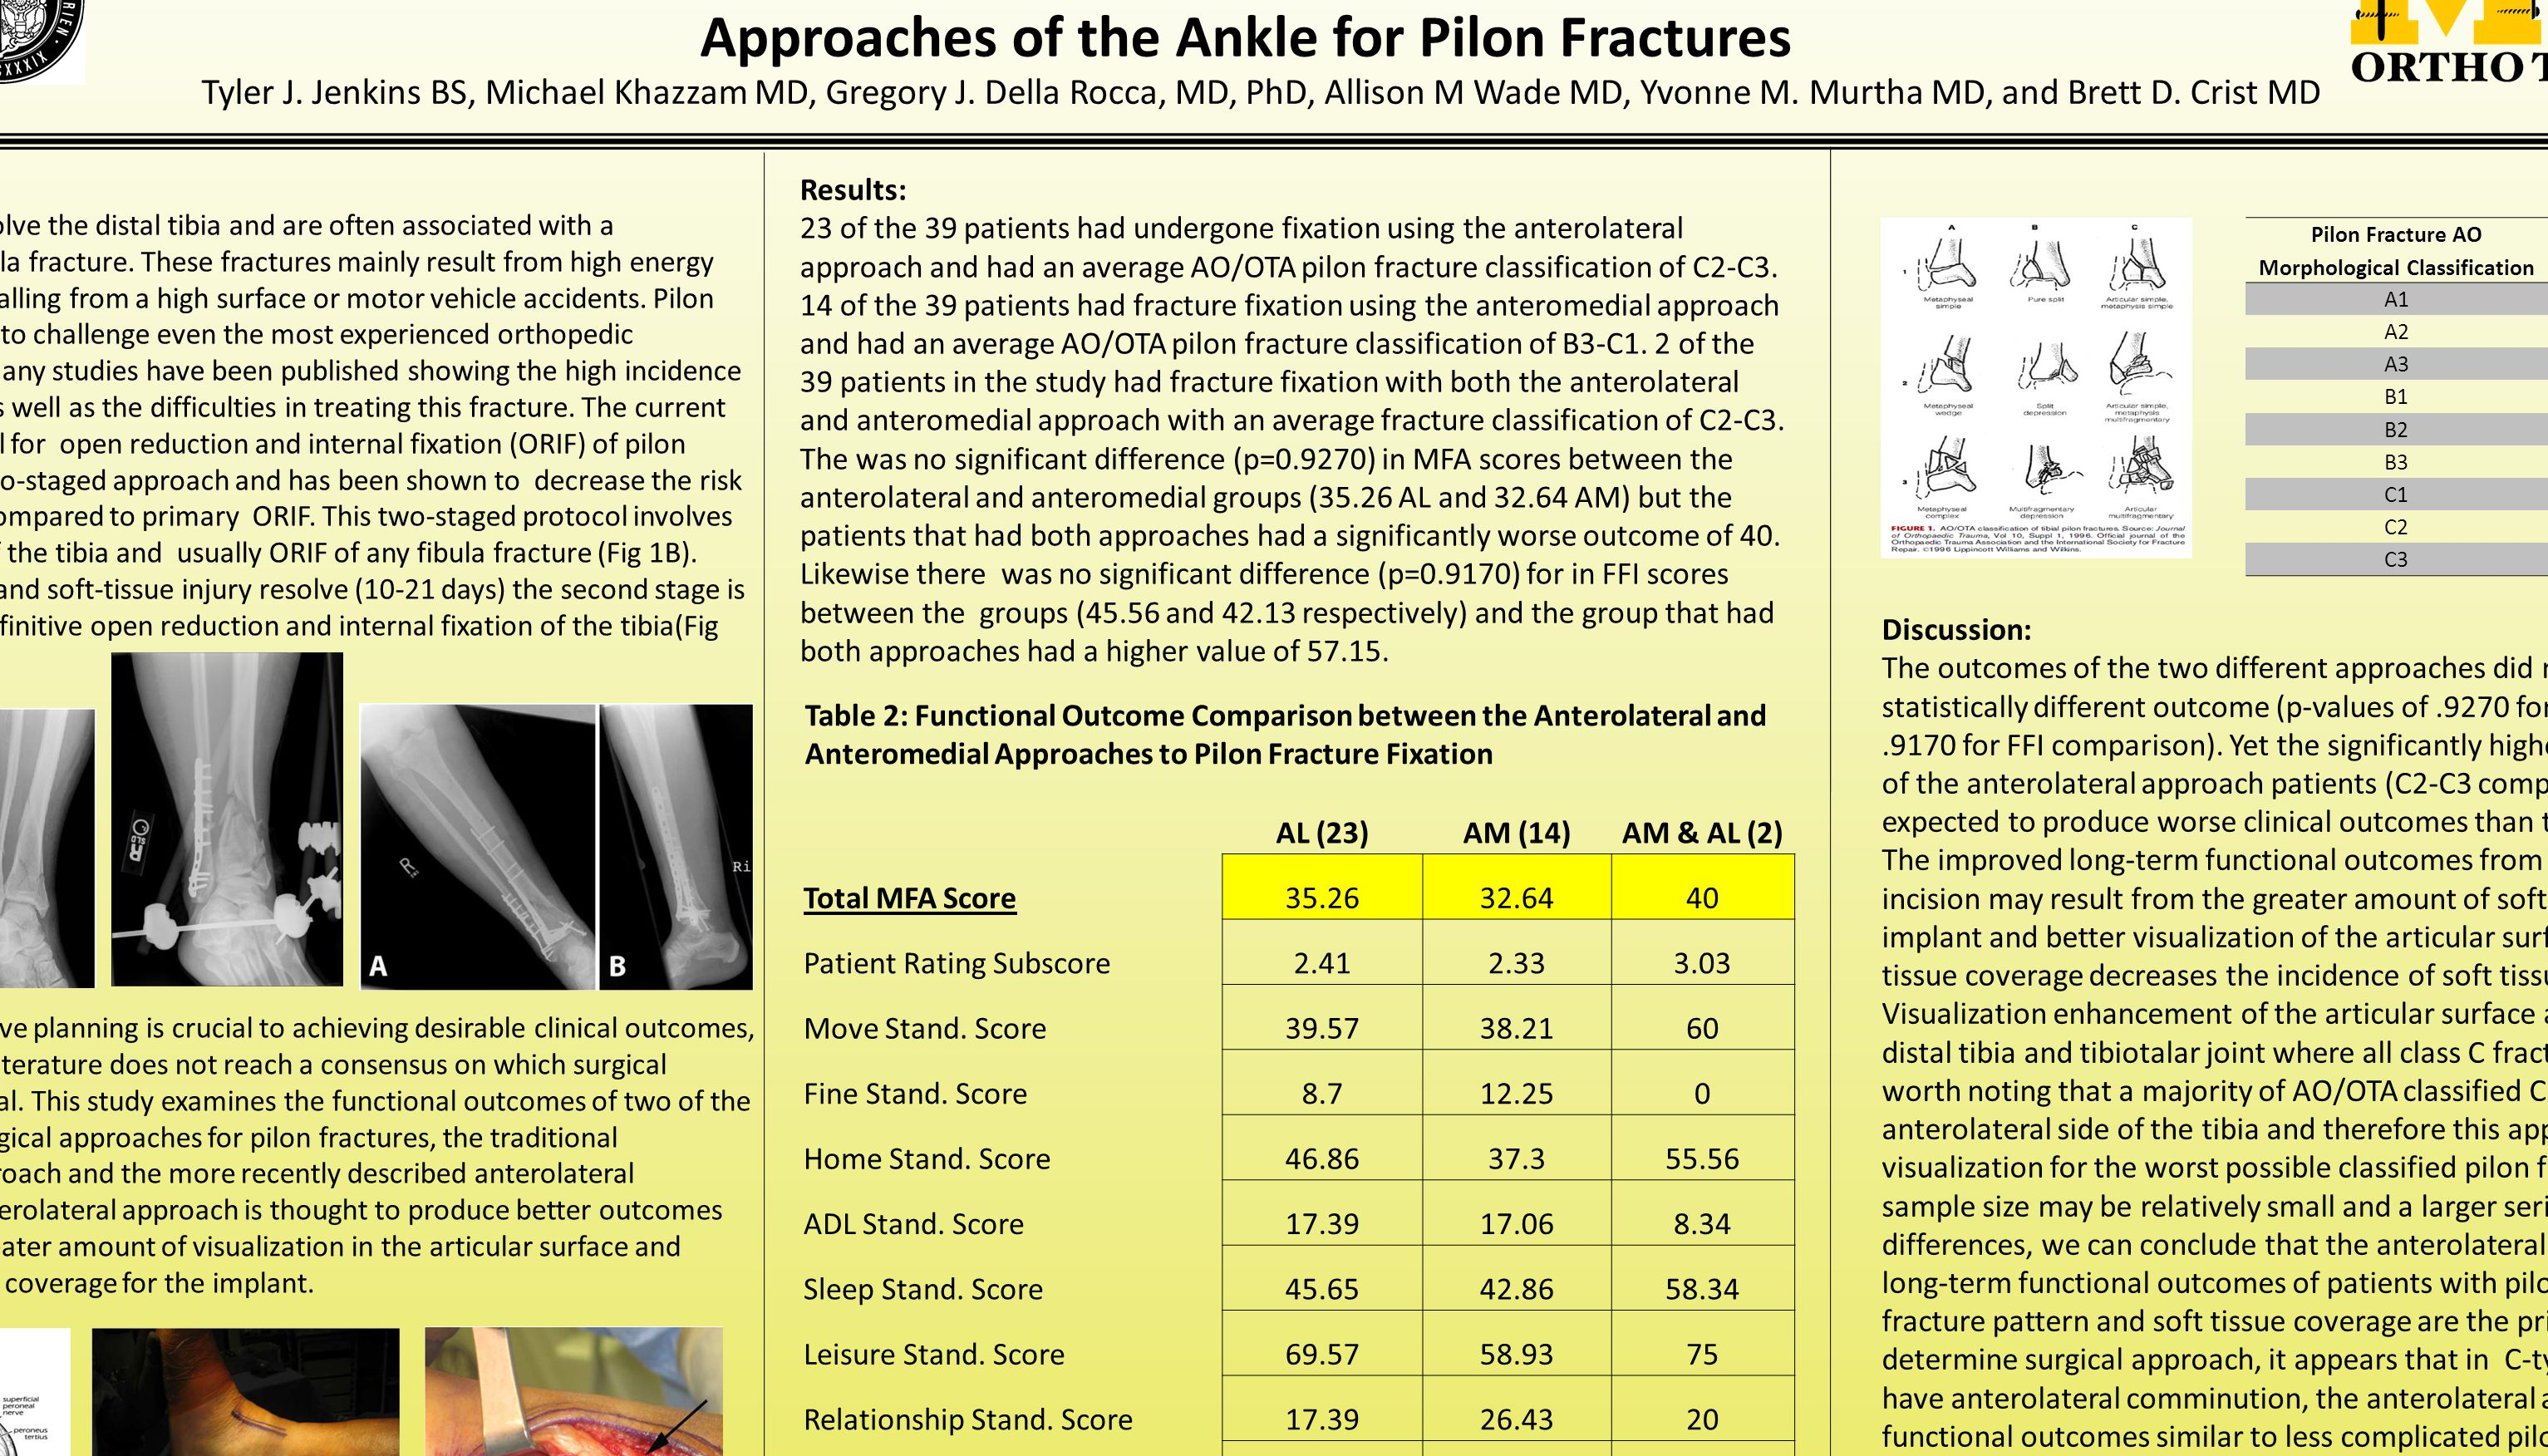 Functional Outcomes of Patients Undergoing Anterolateral versus Anteromedial Approaches of the Ankle for Pilon Fractures Tyler J. Jenkins BS, Michael